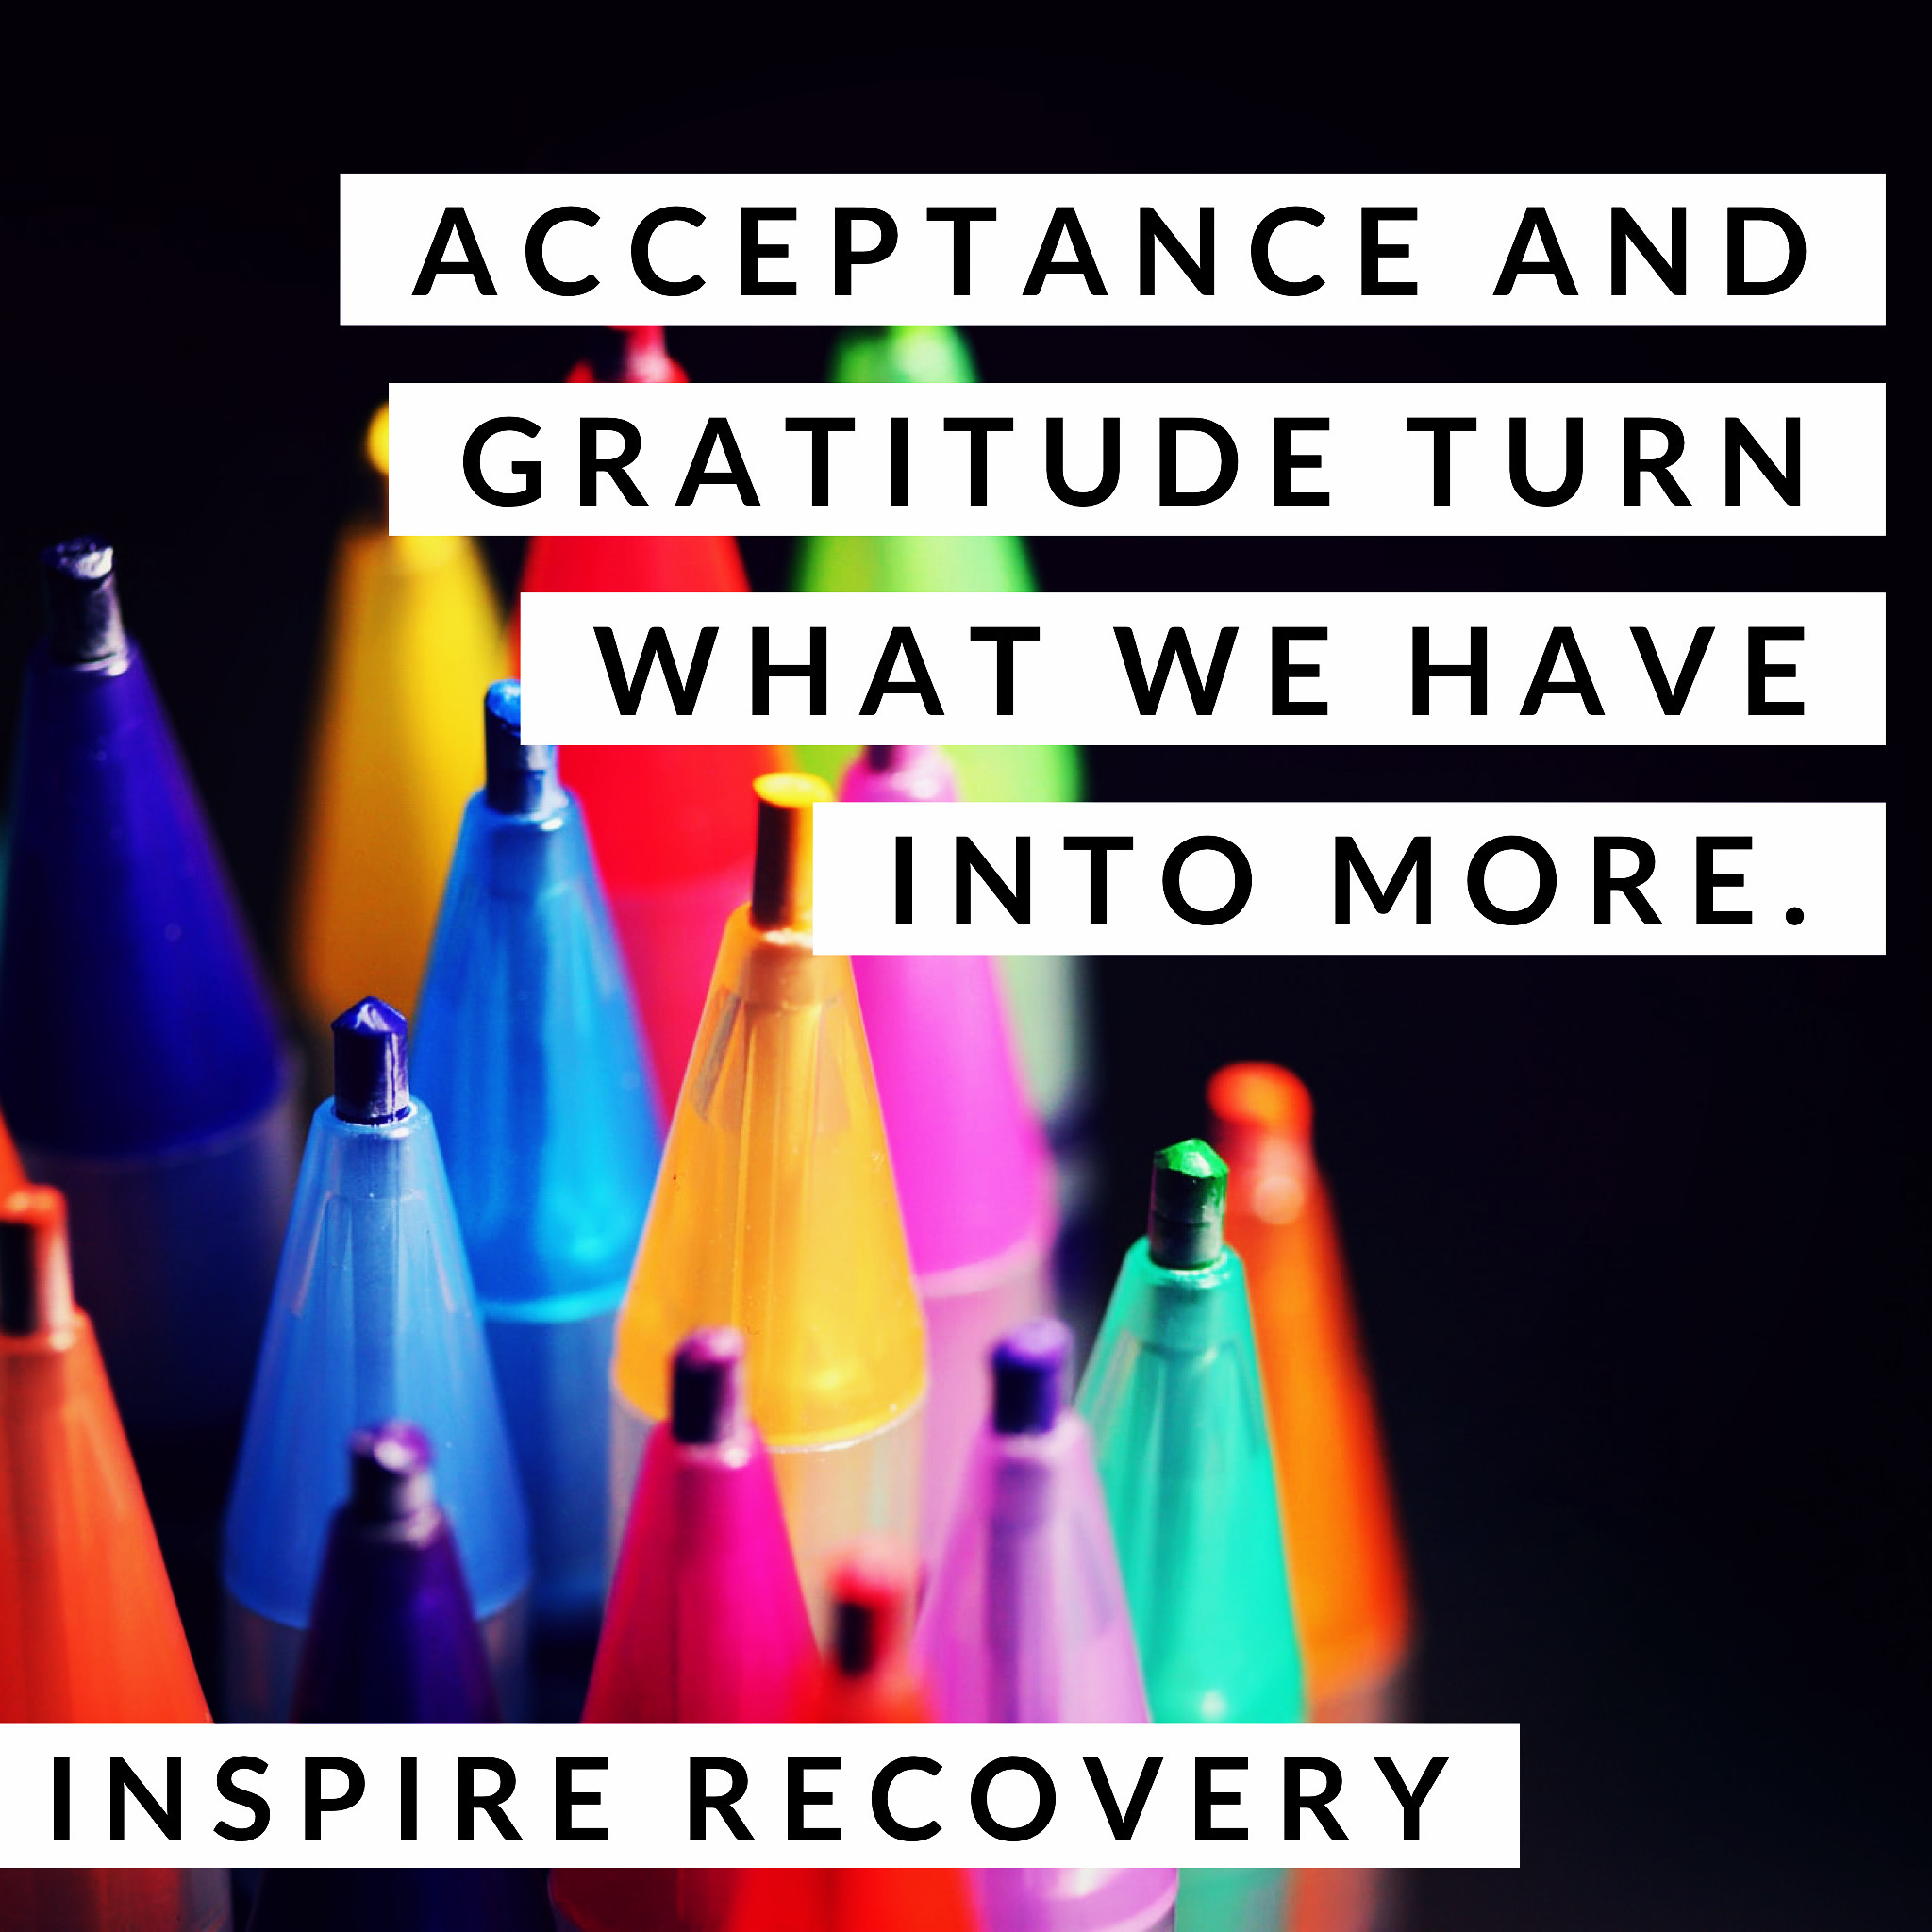 Inspire Recovery 12 step addiction recovery center for the LGBTQ community.